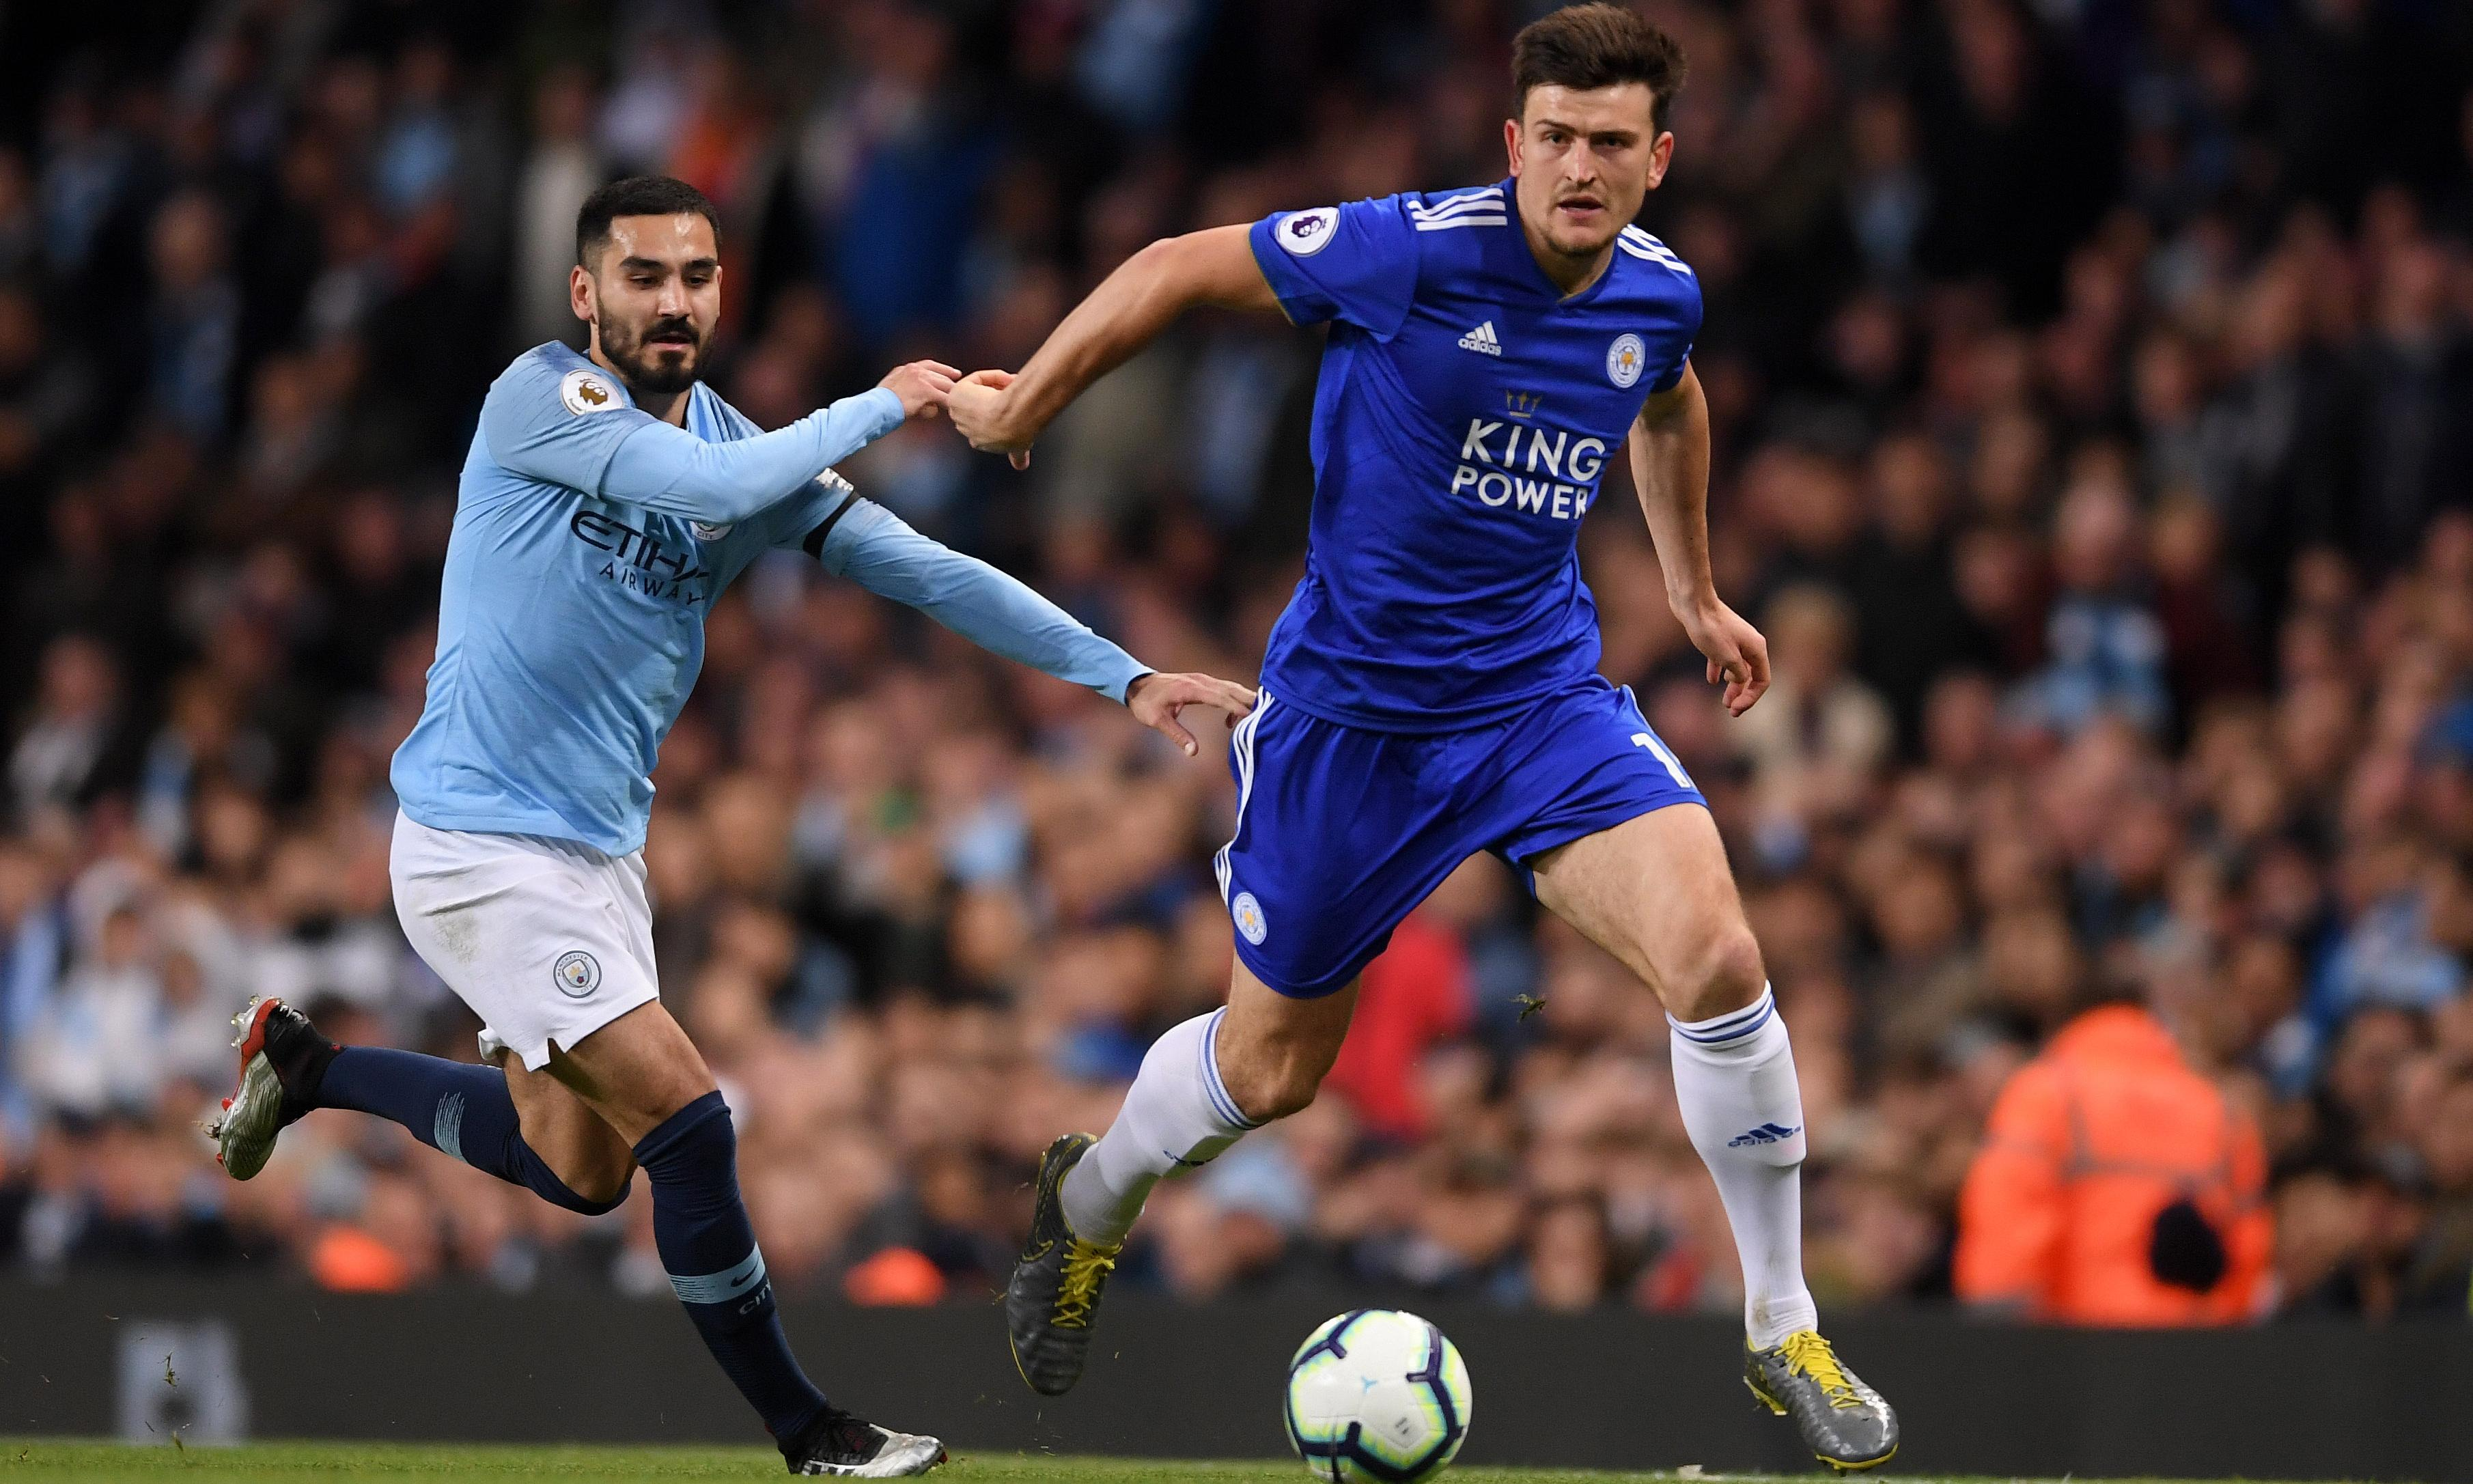 Football transfer rumours: Harry Maguire to Manchester City?